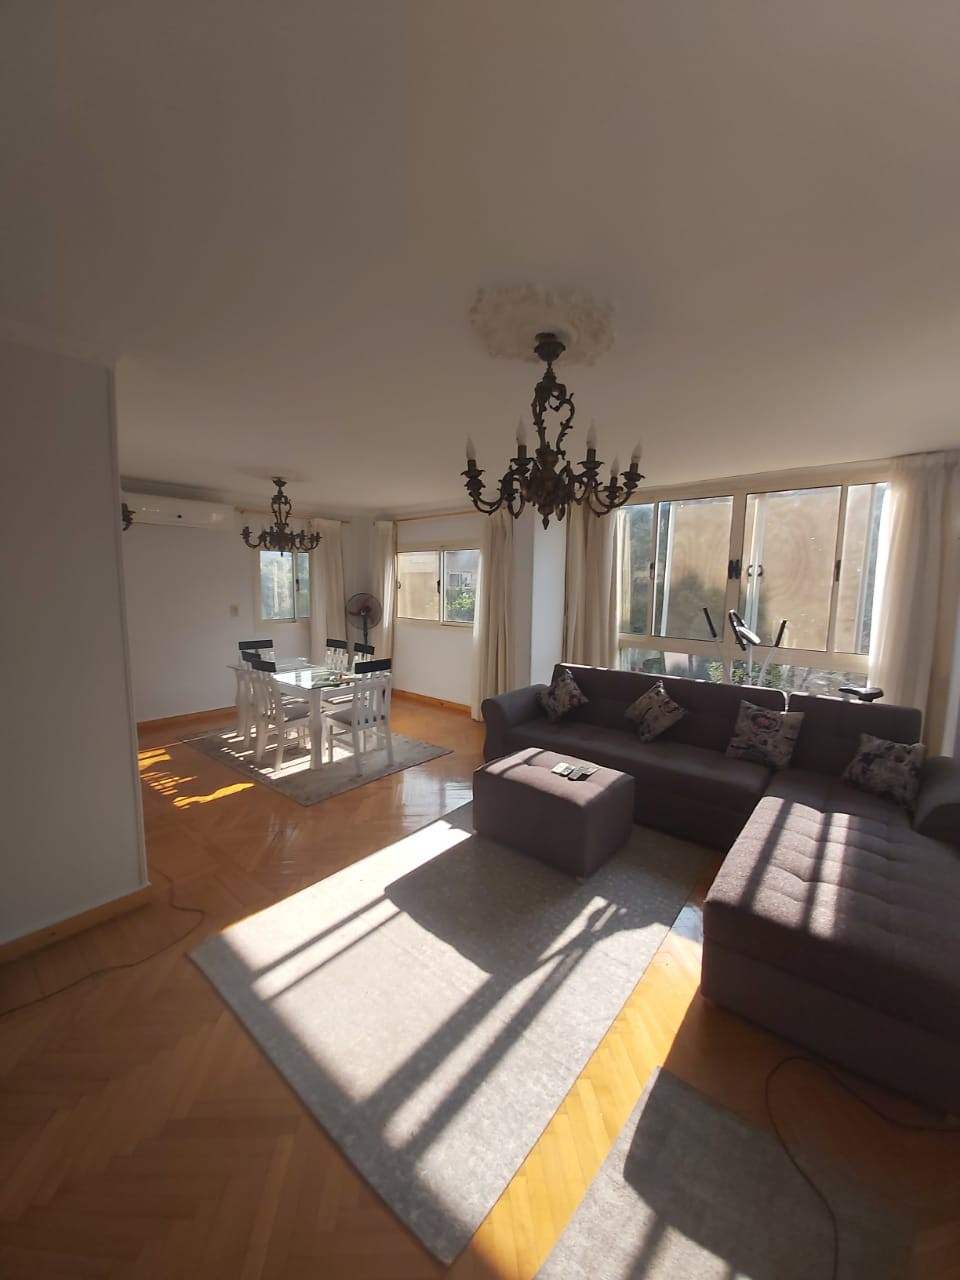 Furnished 2 Bedroom Apartment For Rent In Sarayat El Maadi - 4916 Featured Image